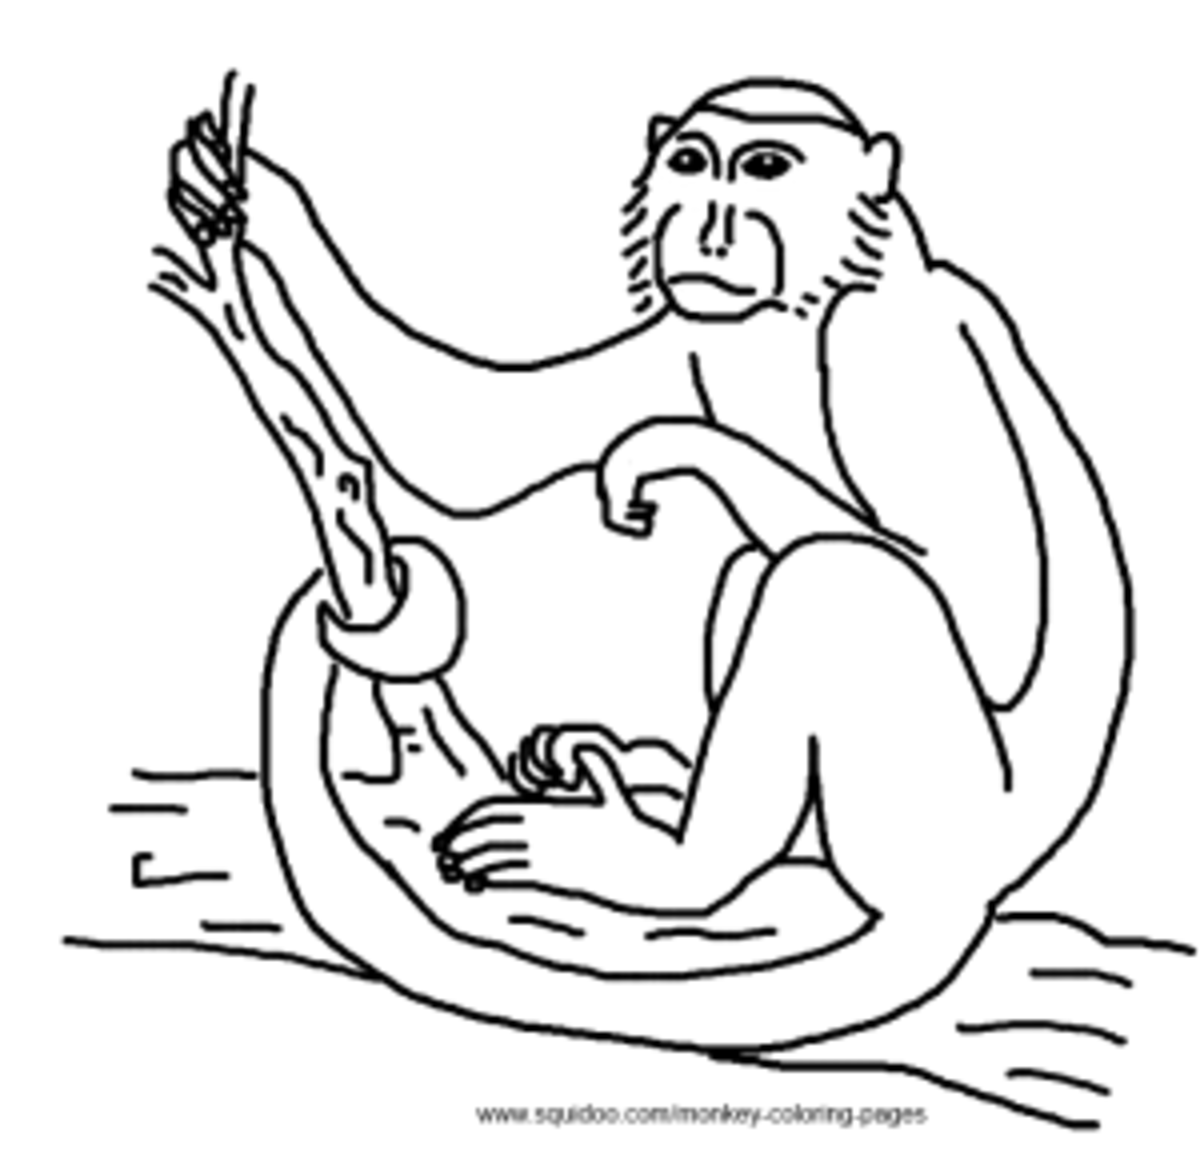 capuchin monkey coloring page download capuchin coloring for free designlooter 2020 coloring page monkey capuchin